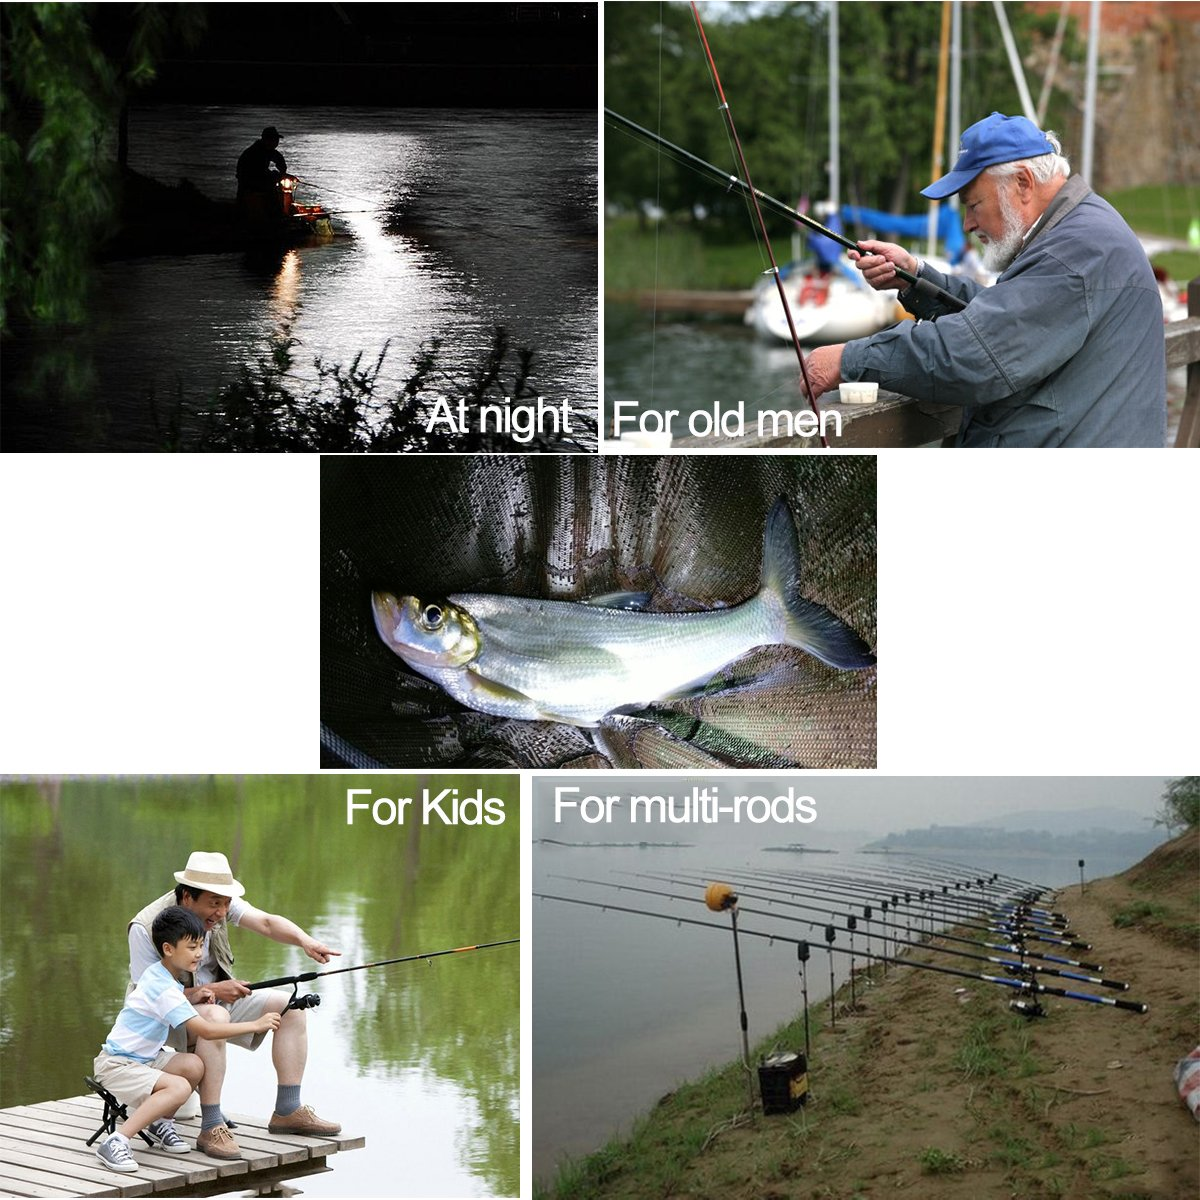 Electronic Bite Alarm for  Fishing Rod Beginners. Alarm with LED Indicator Light Sea Fishing Enthusiasts For Night Fishing Coolnice Freshwater Angling